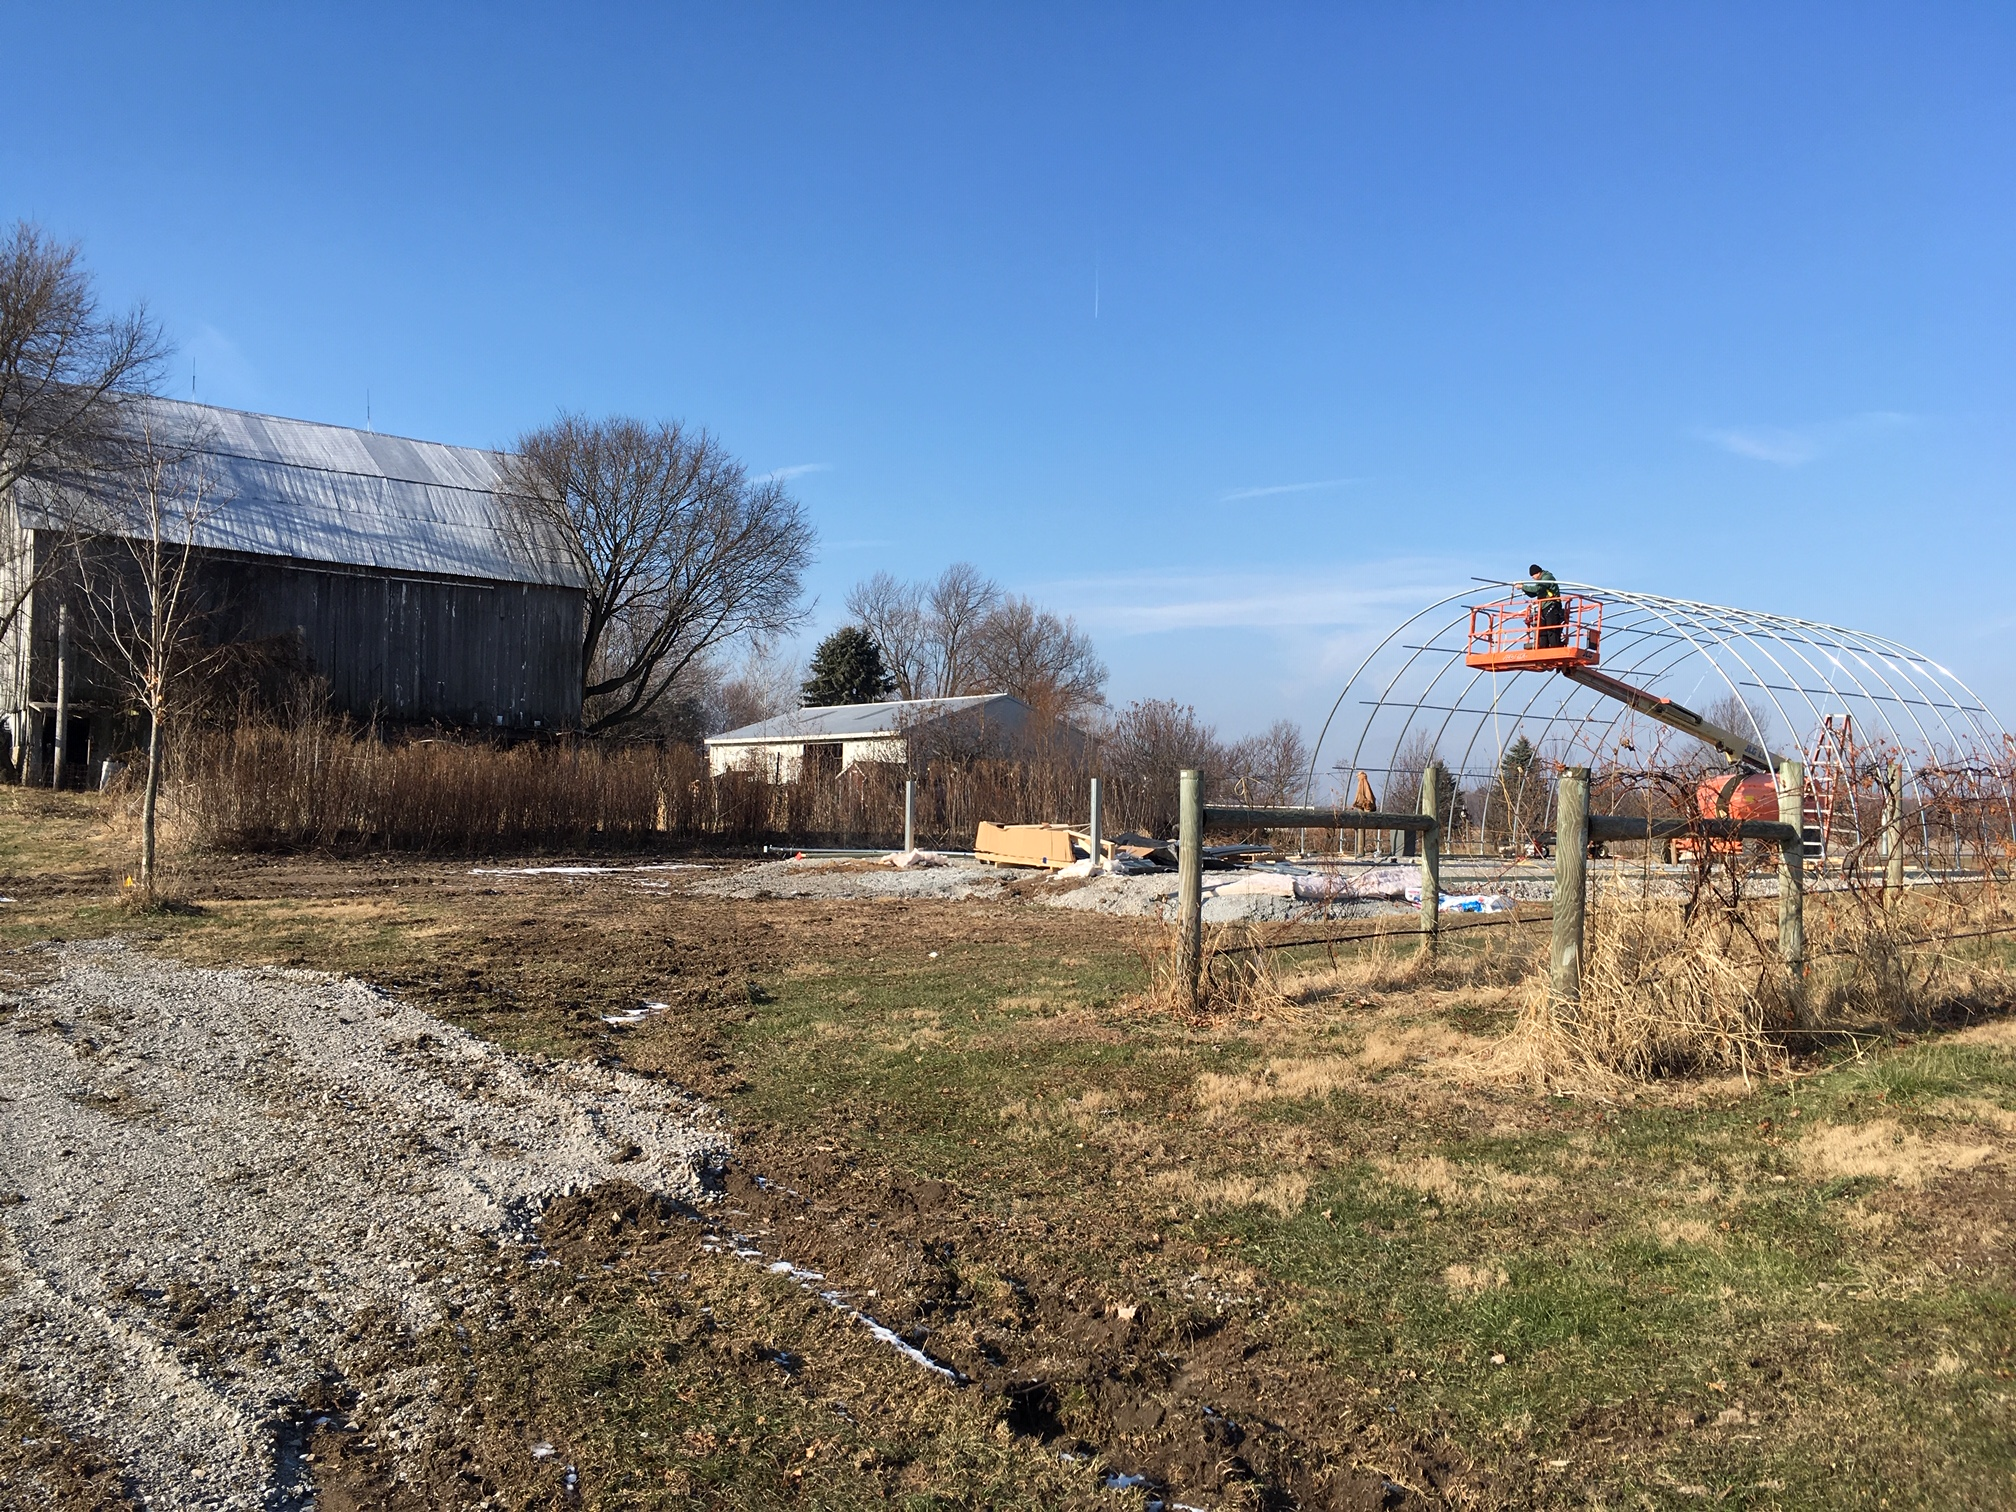 Old barn (mid-late 1800s) and new barn (2018-2019) in one shot. The new barn is 20 feet tall.